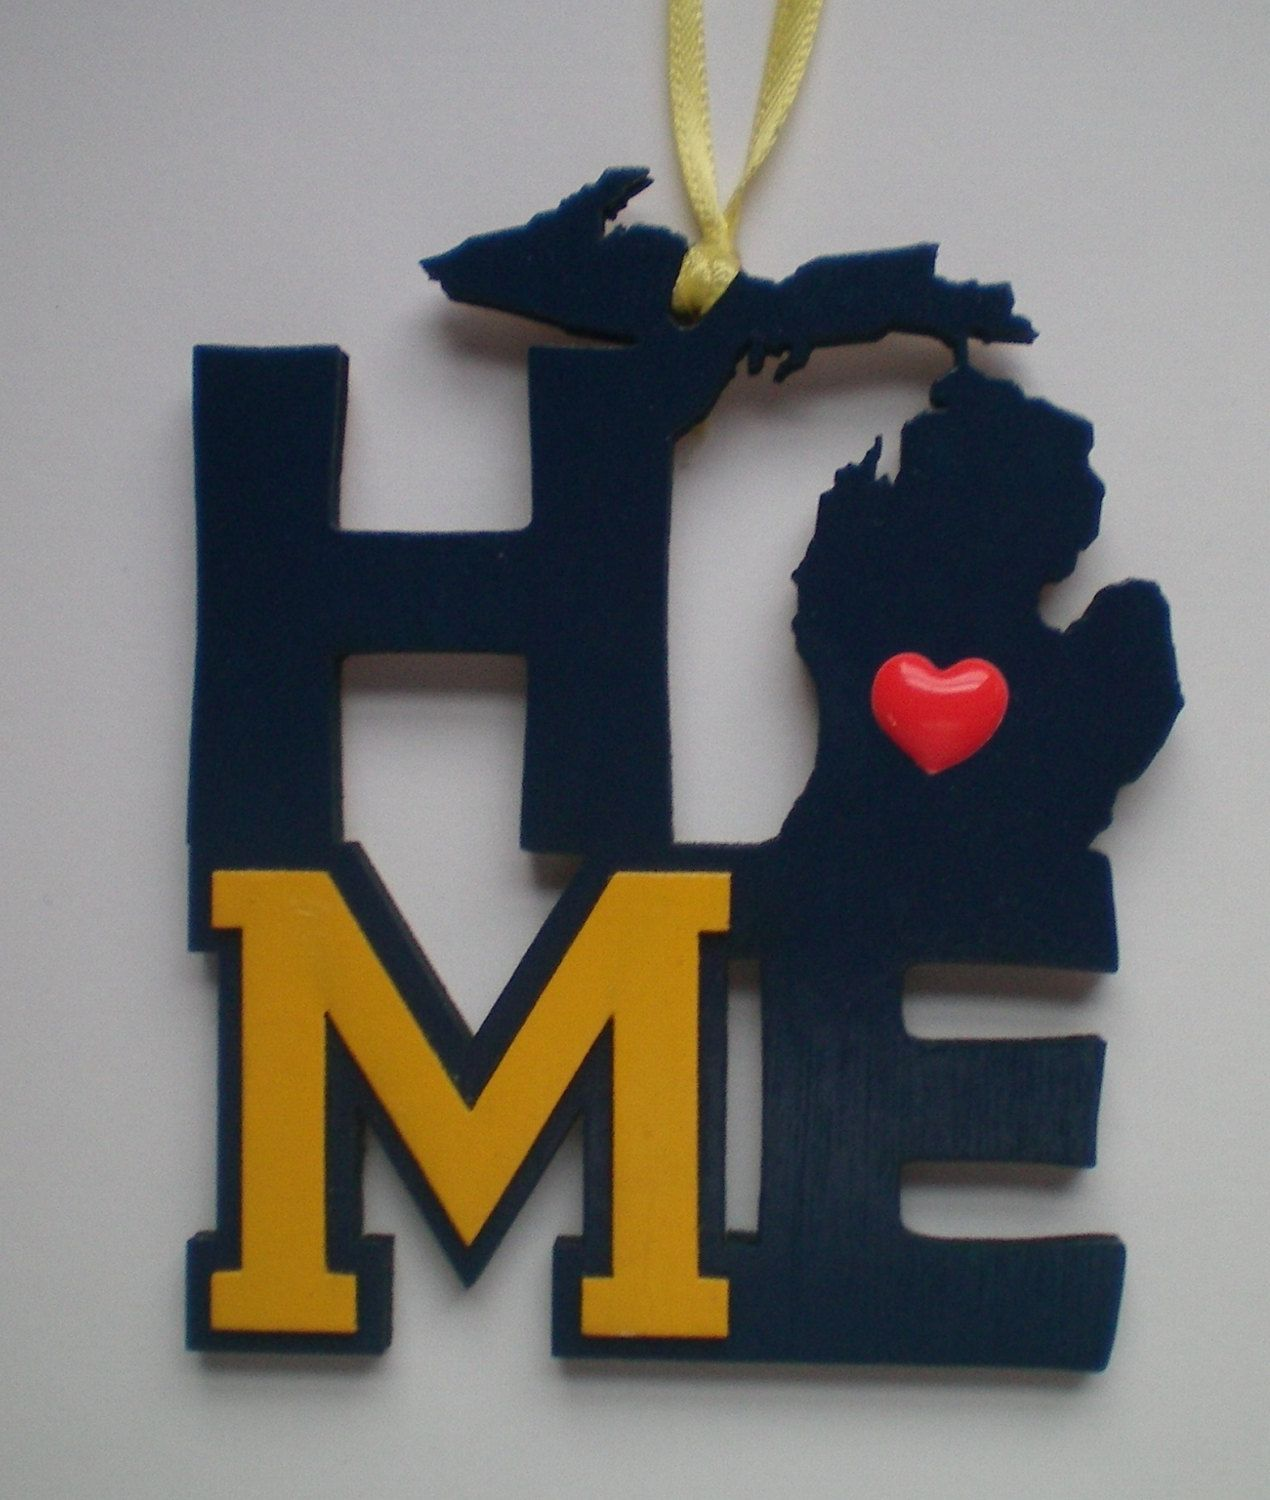 University of michigan christmas ornaments - University Of Michigan Wolverines Home Christmas Ornament